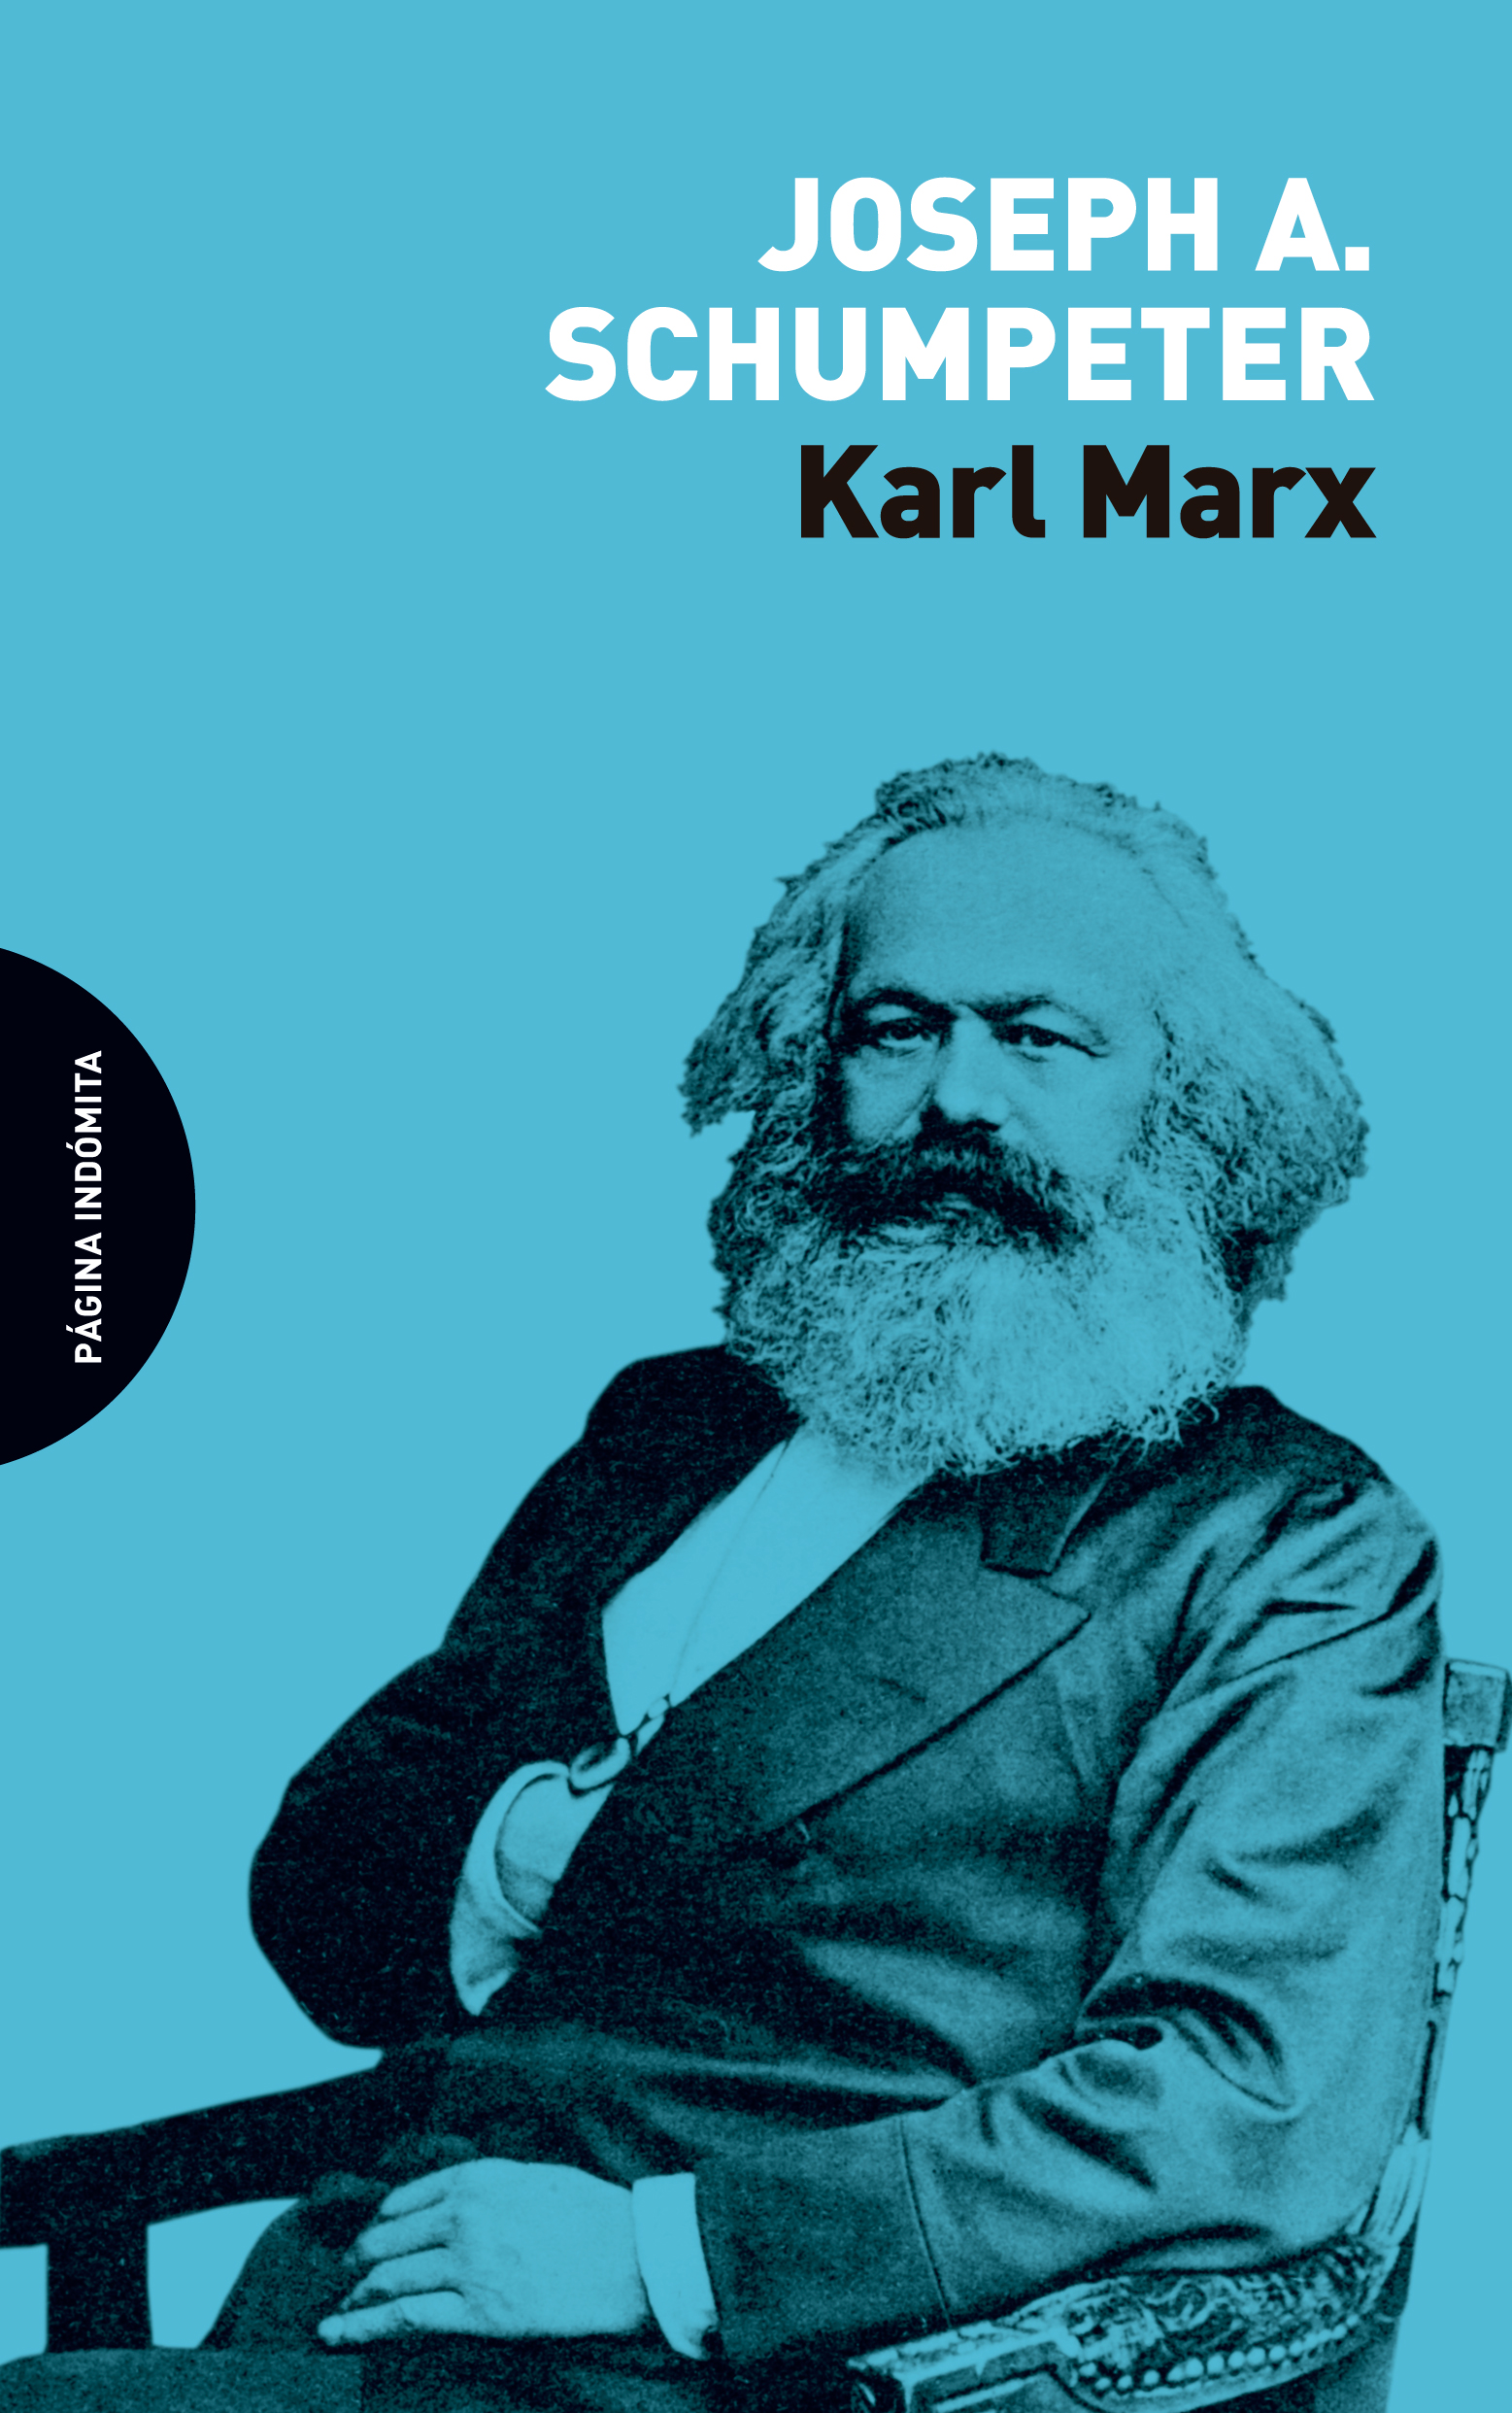 marx and schumpeter Thus opens schumpeter's prologue to a section of his 1942 book, capitalism, socialism and democracy one might think, on the basis of the quote, that schumpeter was a marxist but the analysis that led schumpeter to his conclusion differed totally from karl marx 's.